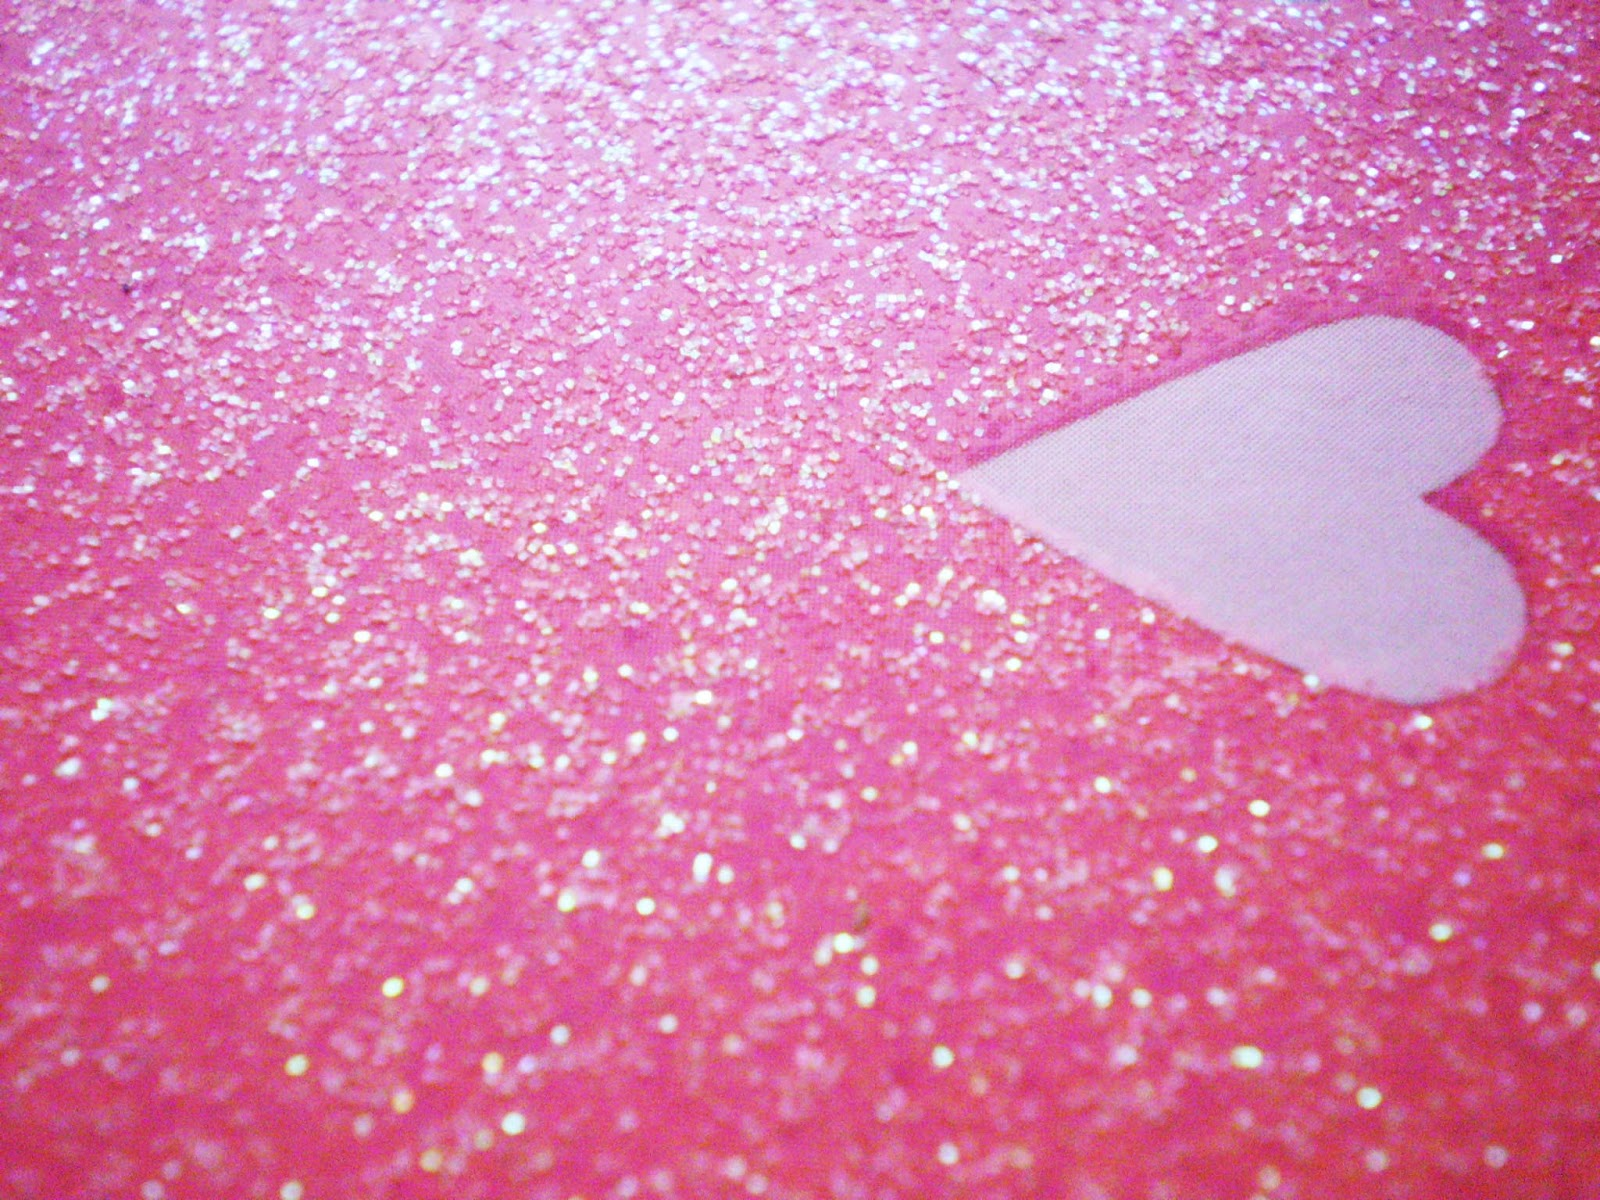 Beautiful glitter pictures wallpapers pictures fashion for Baby pink glitter wallpaper